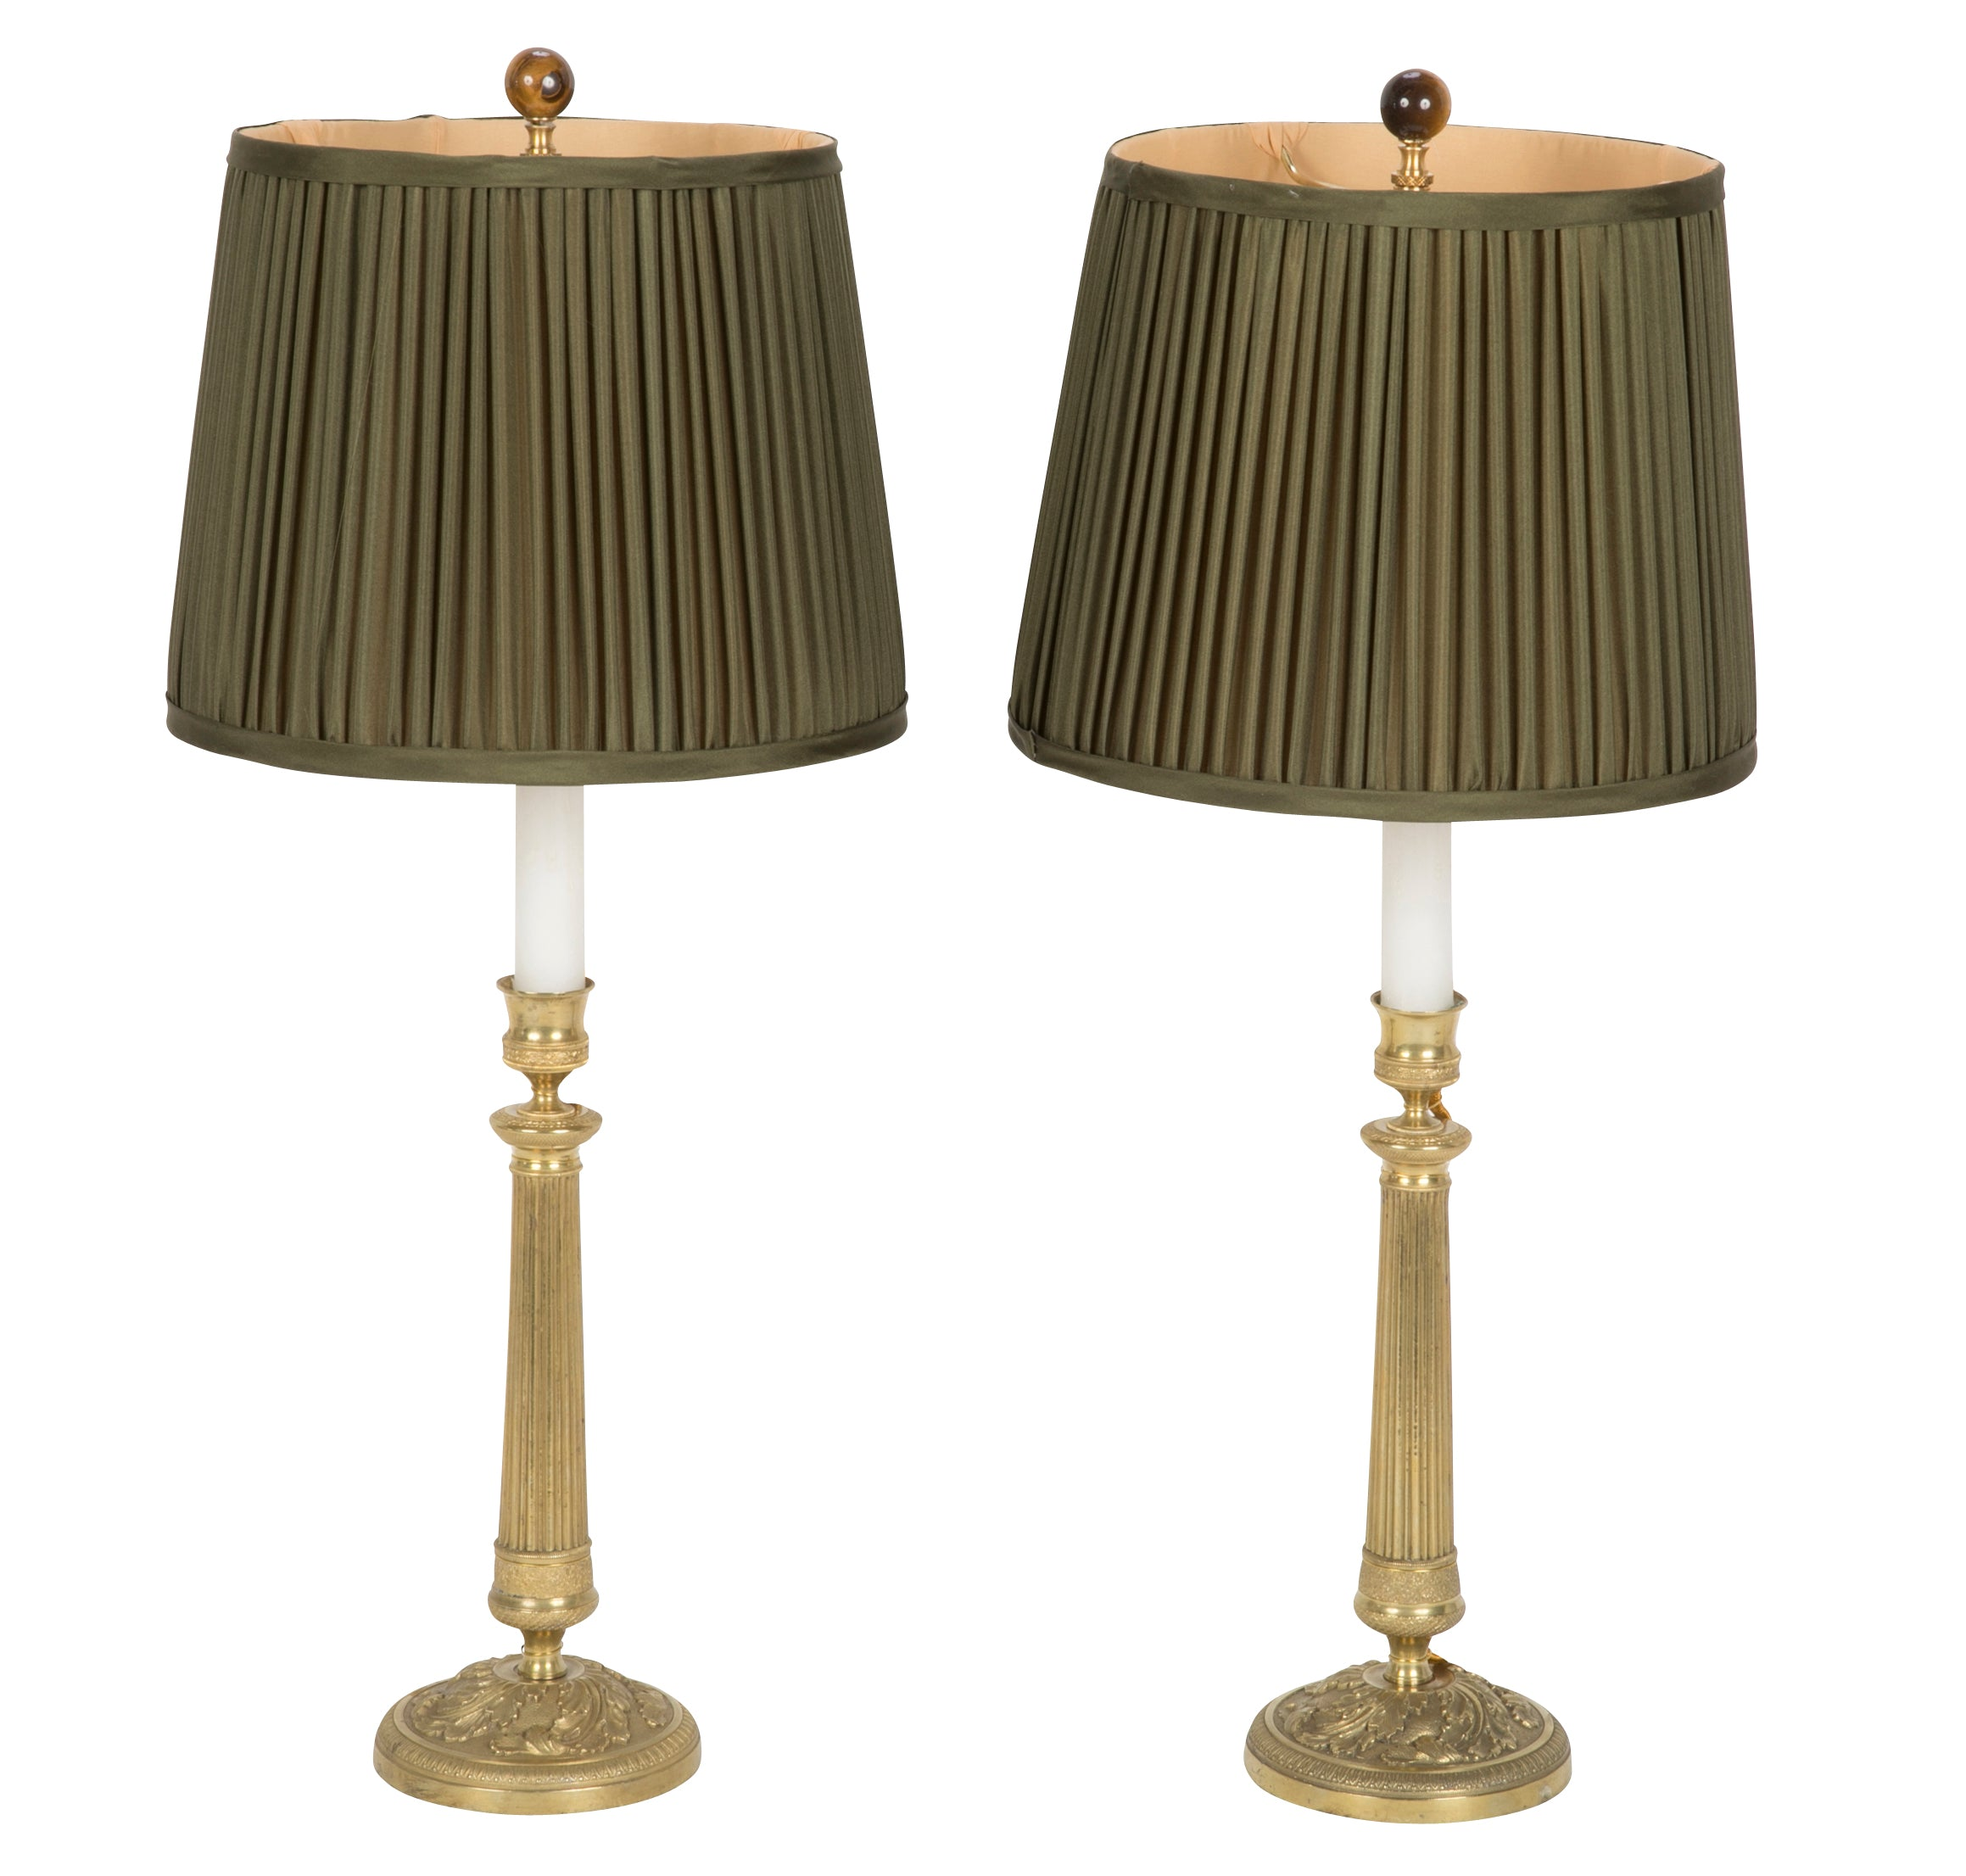 High Quality A Pair Of Louis XVI Style Candlesticks Now Electrified As Lamps